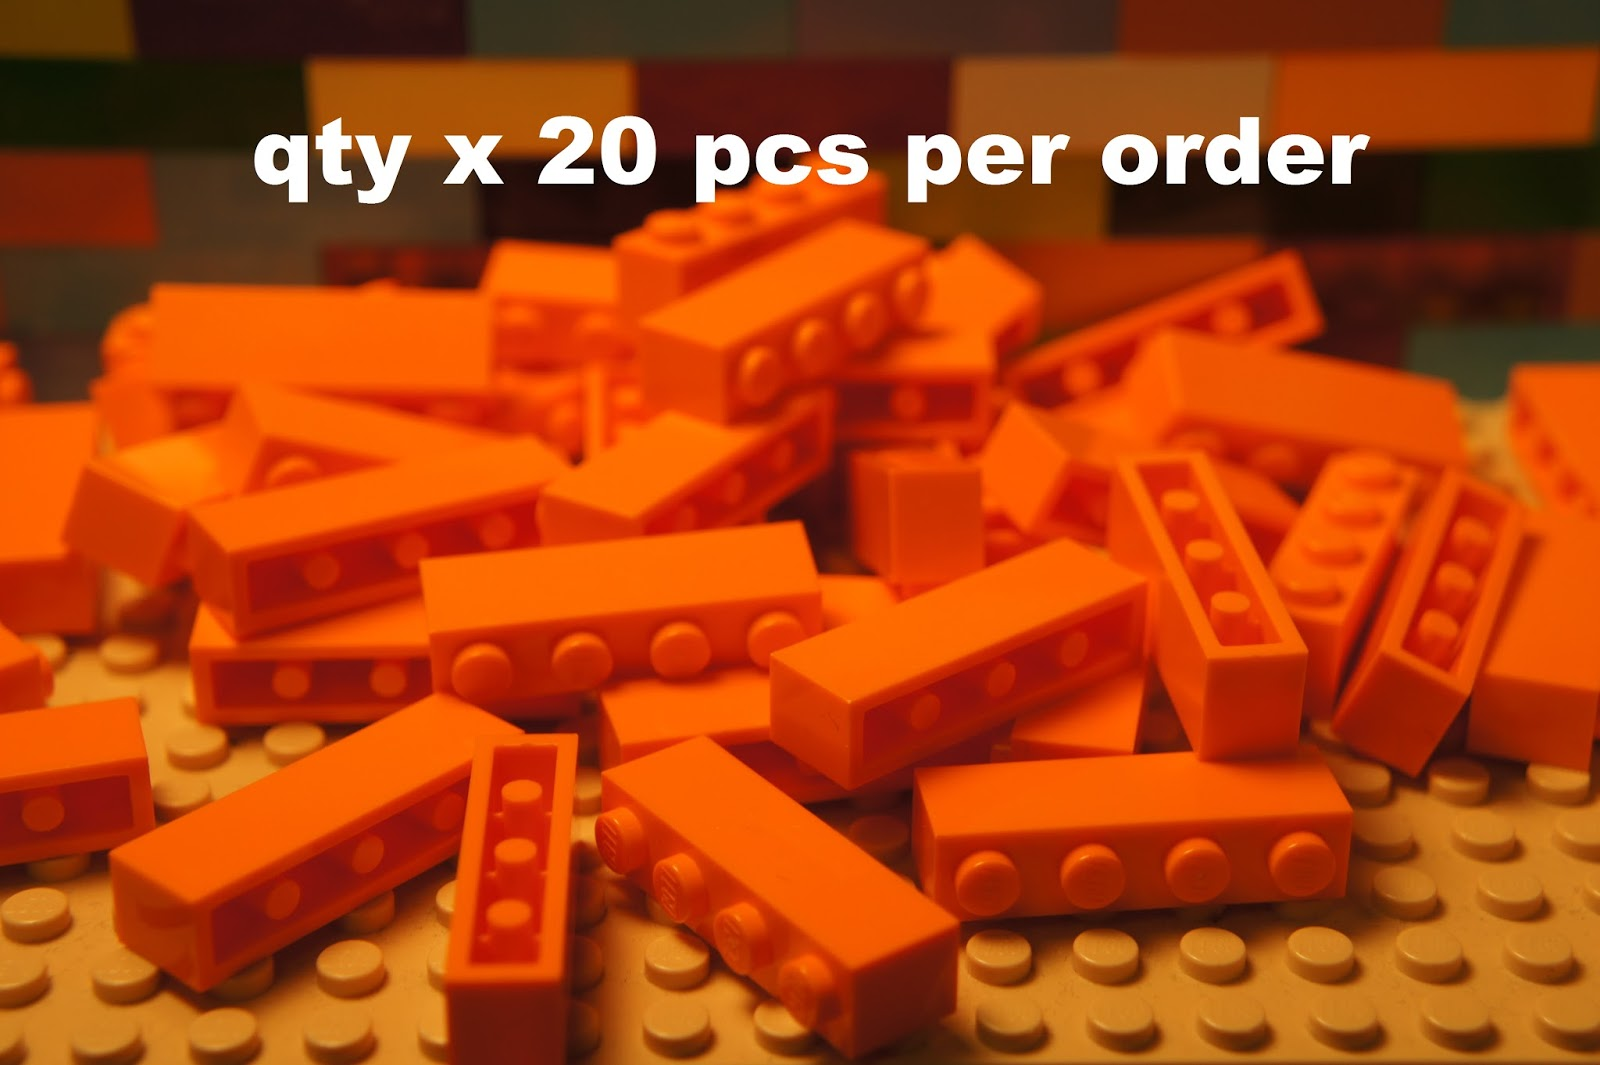 LEGO 3010 Bricks 1x4 Yellow Pack of 100 Parts Pieces City